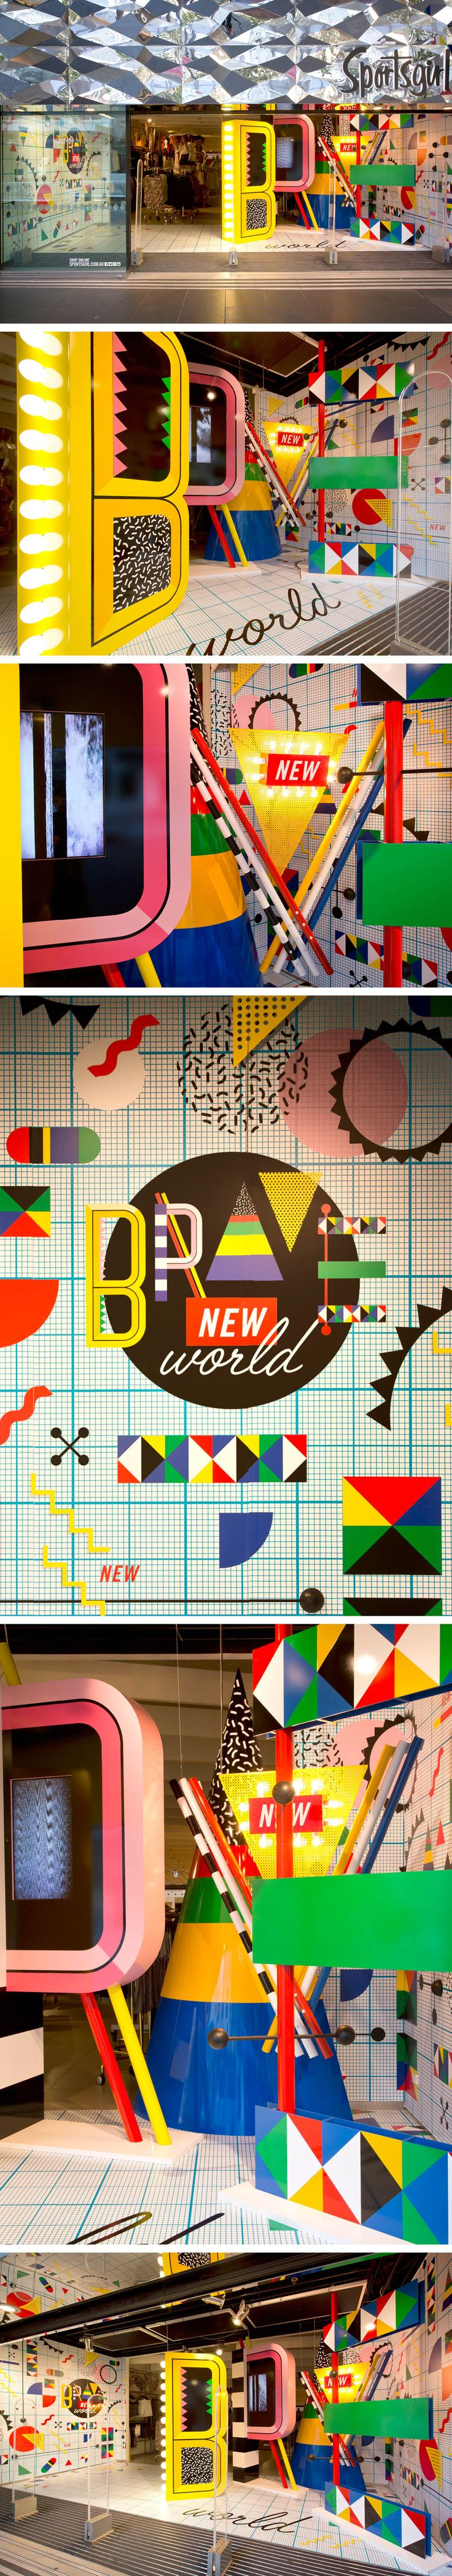 BraveNewWorld_Blog_01